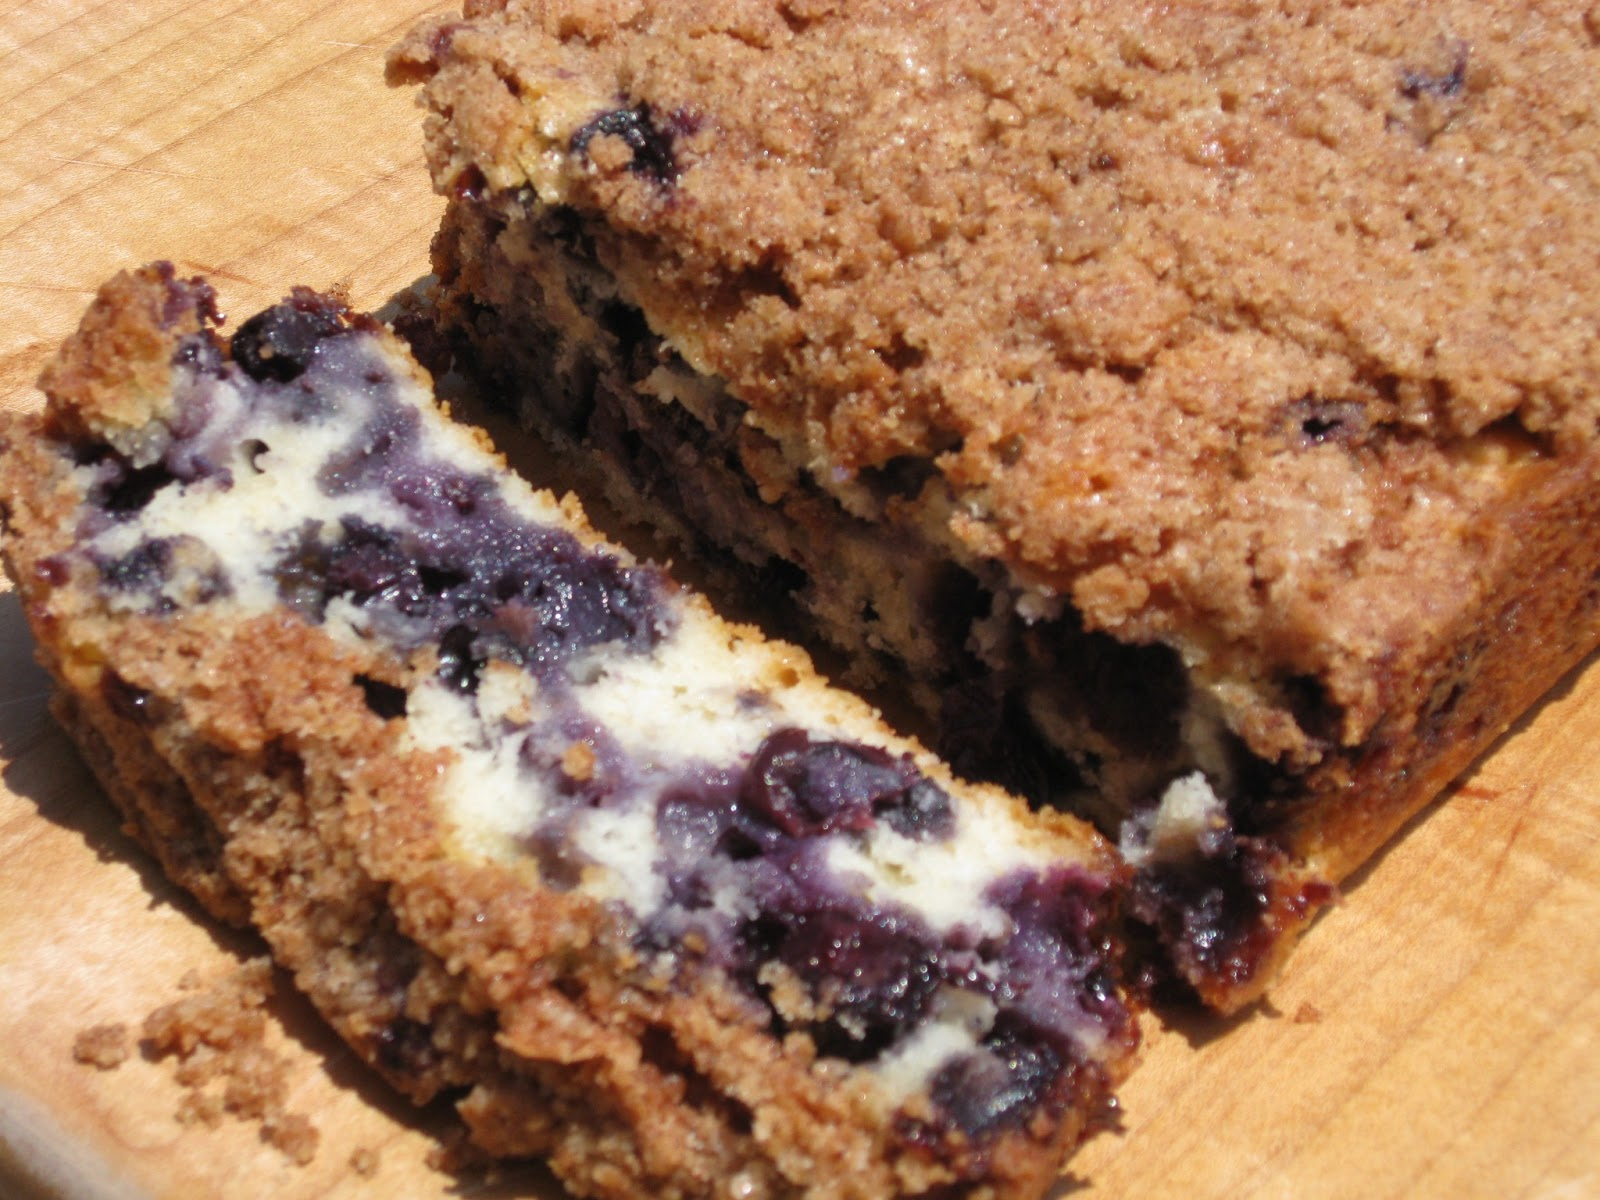 blueberry loaf cake bonz blogz blueberry loaf cake 1973